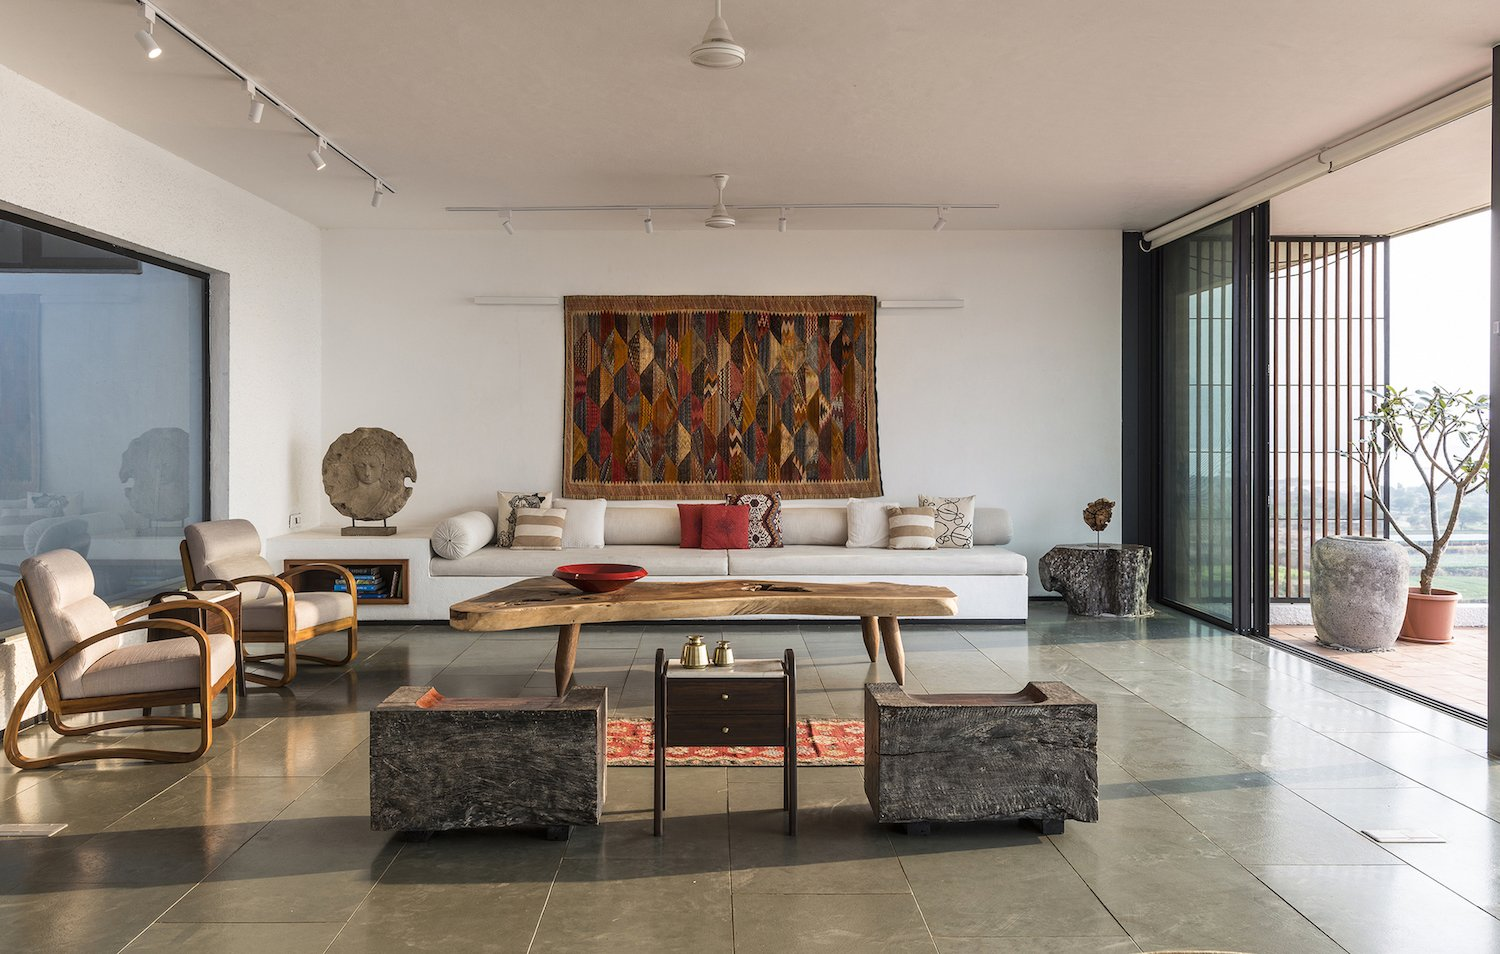 Photo 1 Of 355 In Living Track Photos From A Modern Home In India Evokes Emotion With A Giant 4 Ton Rock Dwell